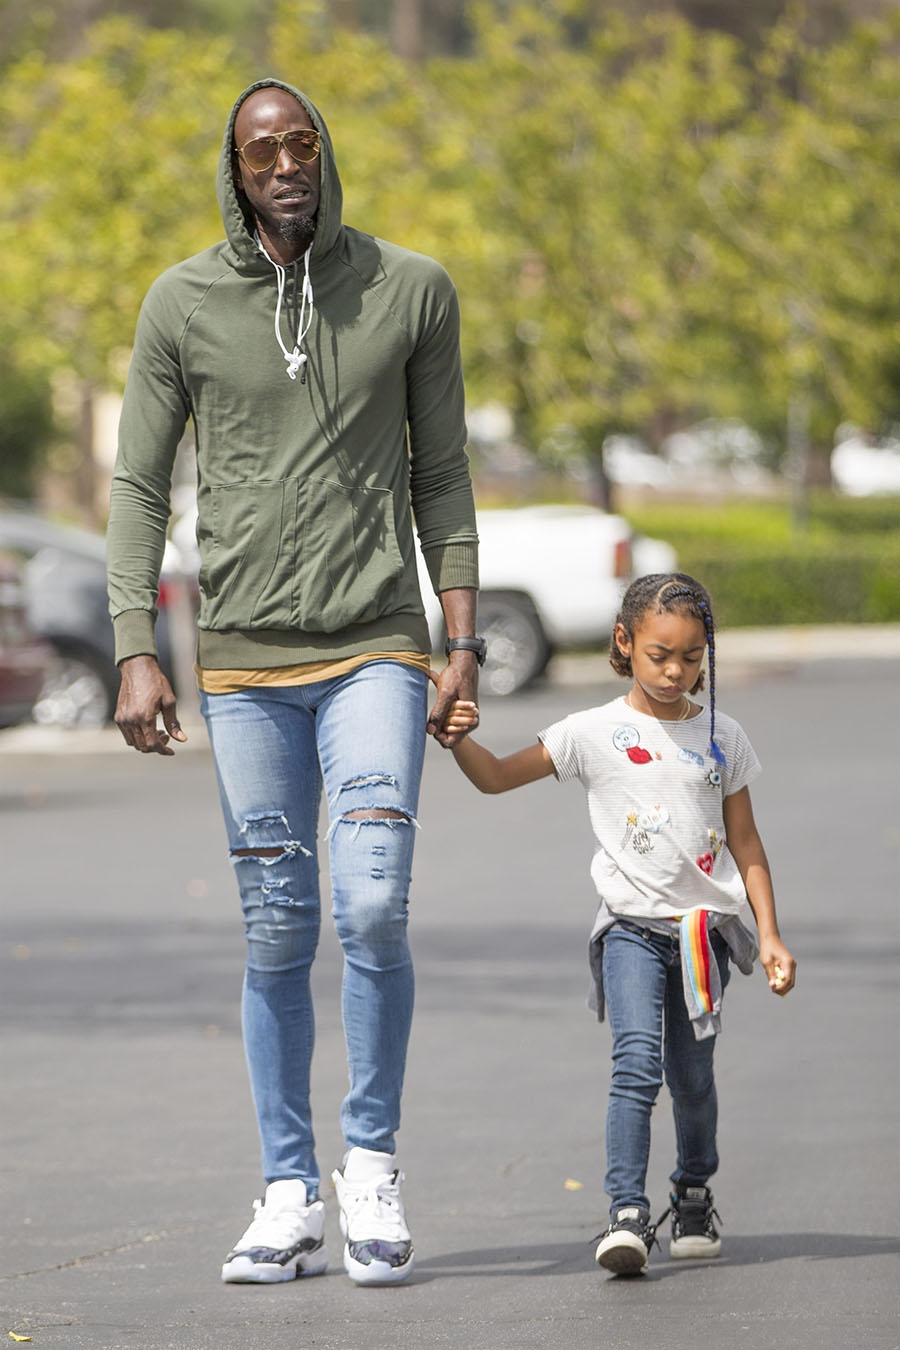 NBA superstar Kevin Garnett was seen taking his adorable daughter Capri out for an ice cream